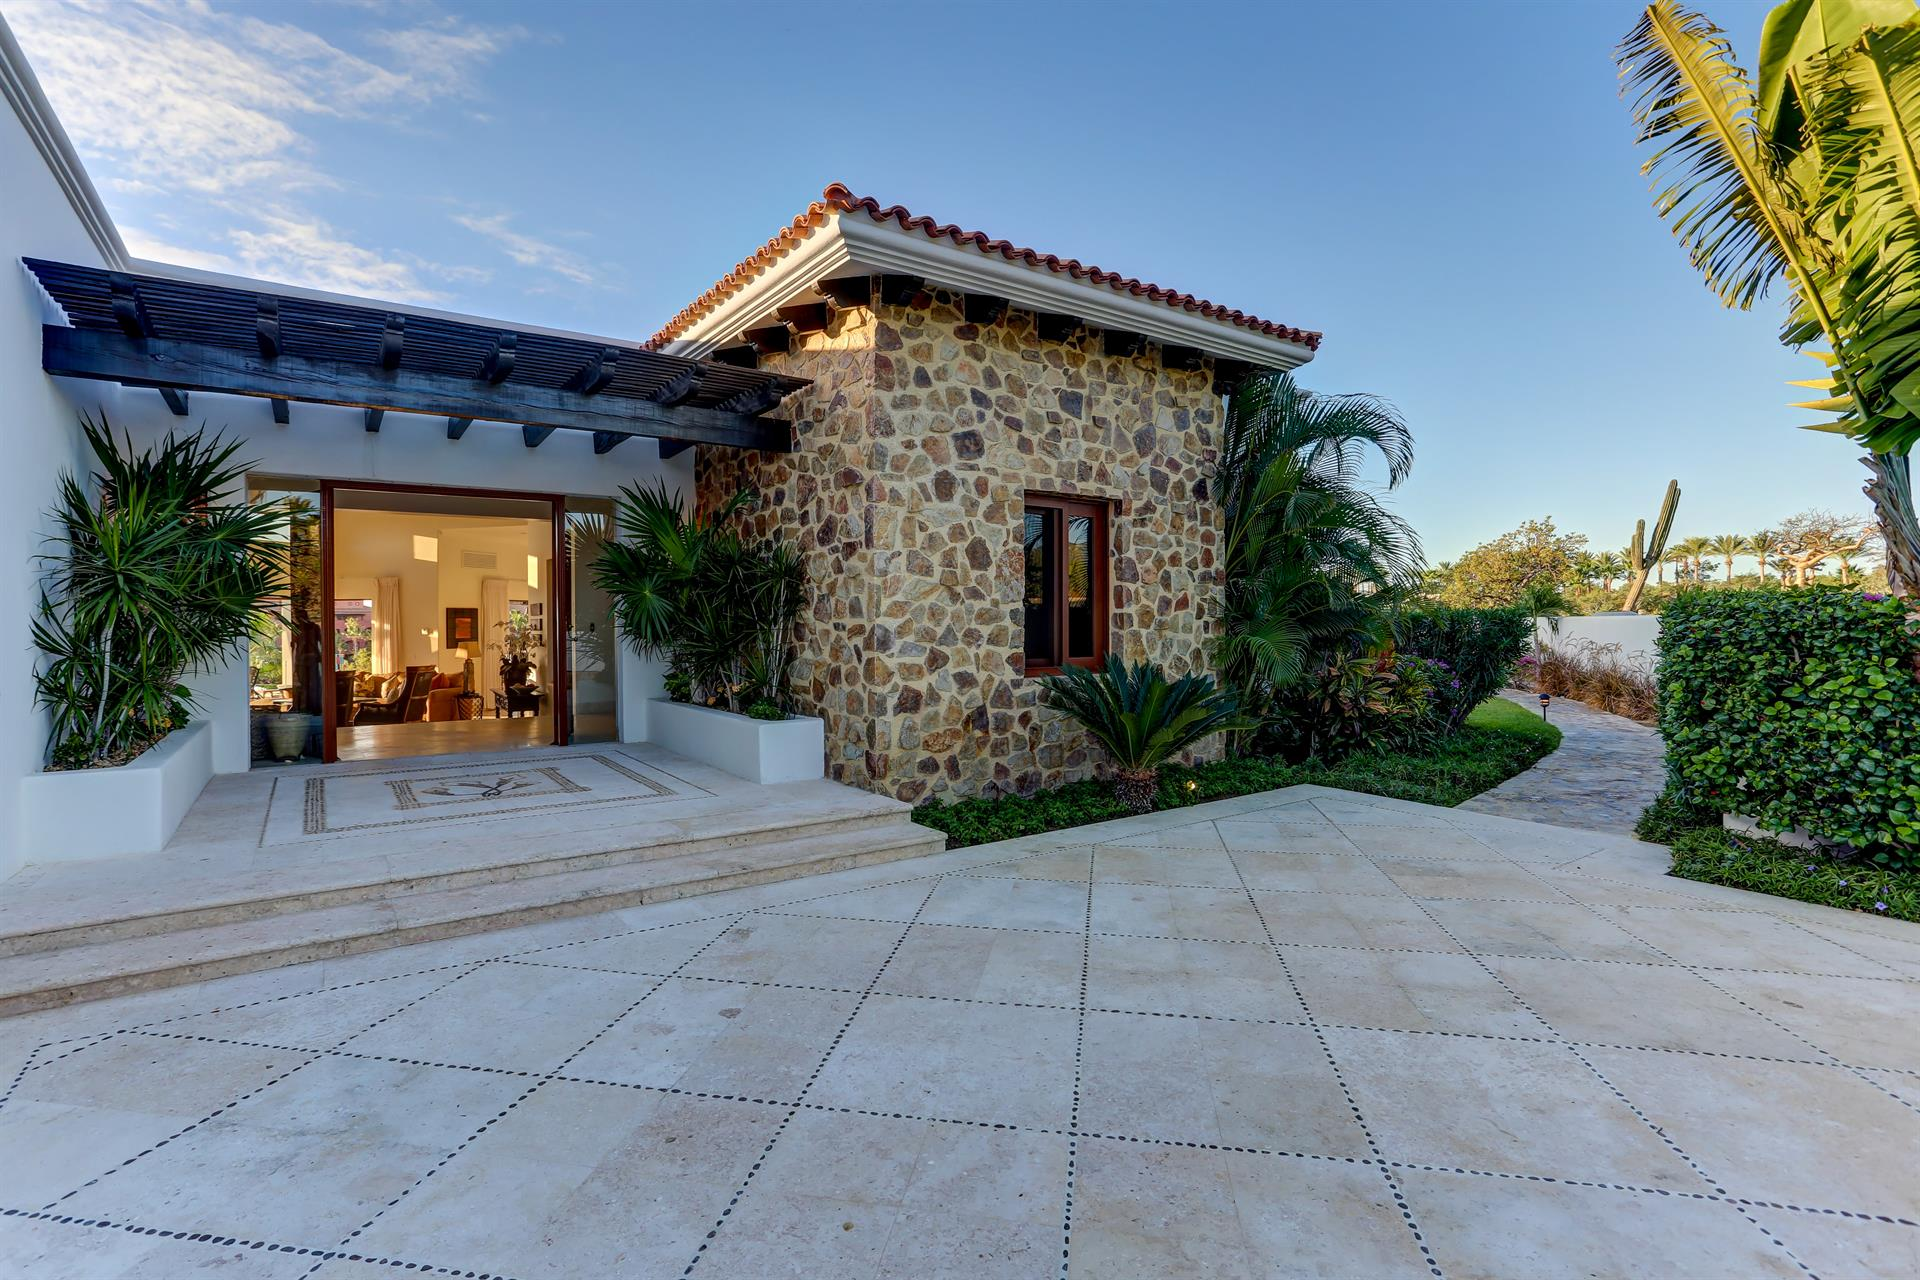 Additional photo for property listing at Casa de la Playa  San Jose Del Cabo, Baja California Sur,23406 Mexique